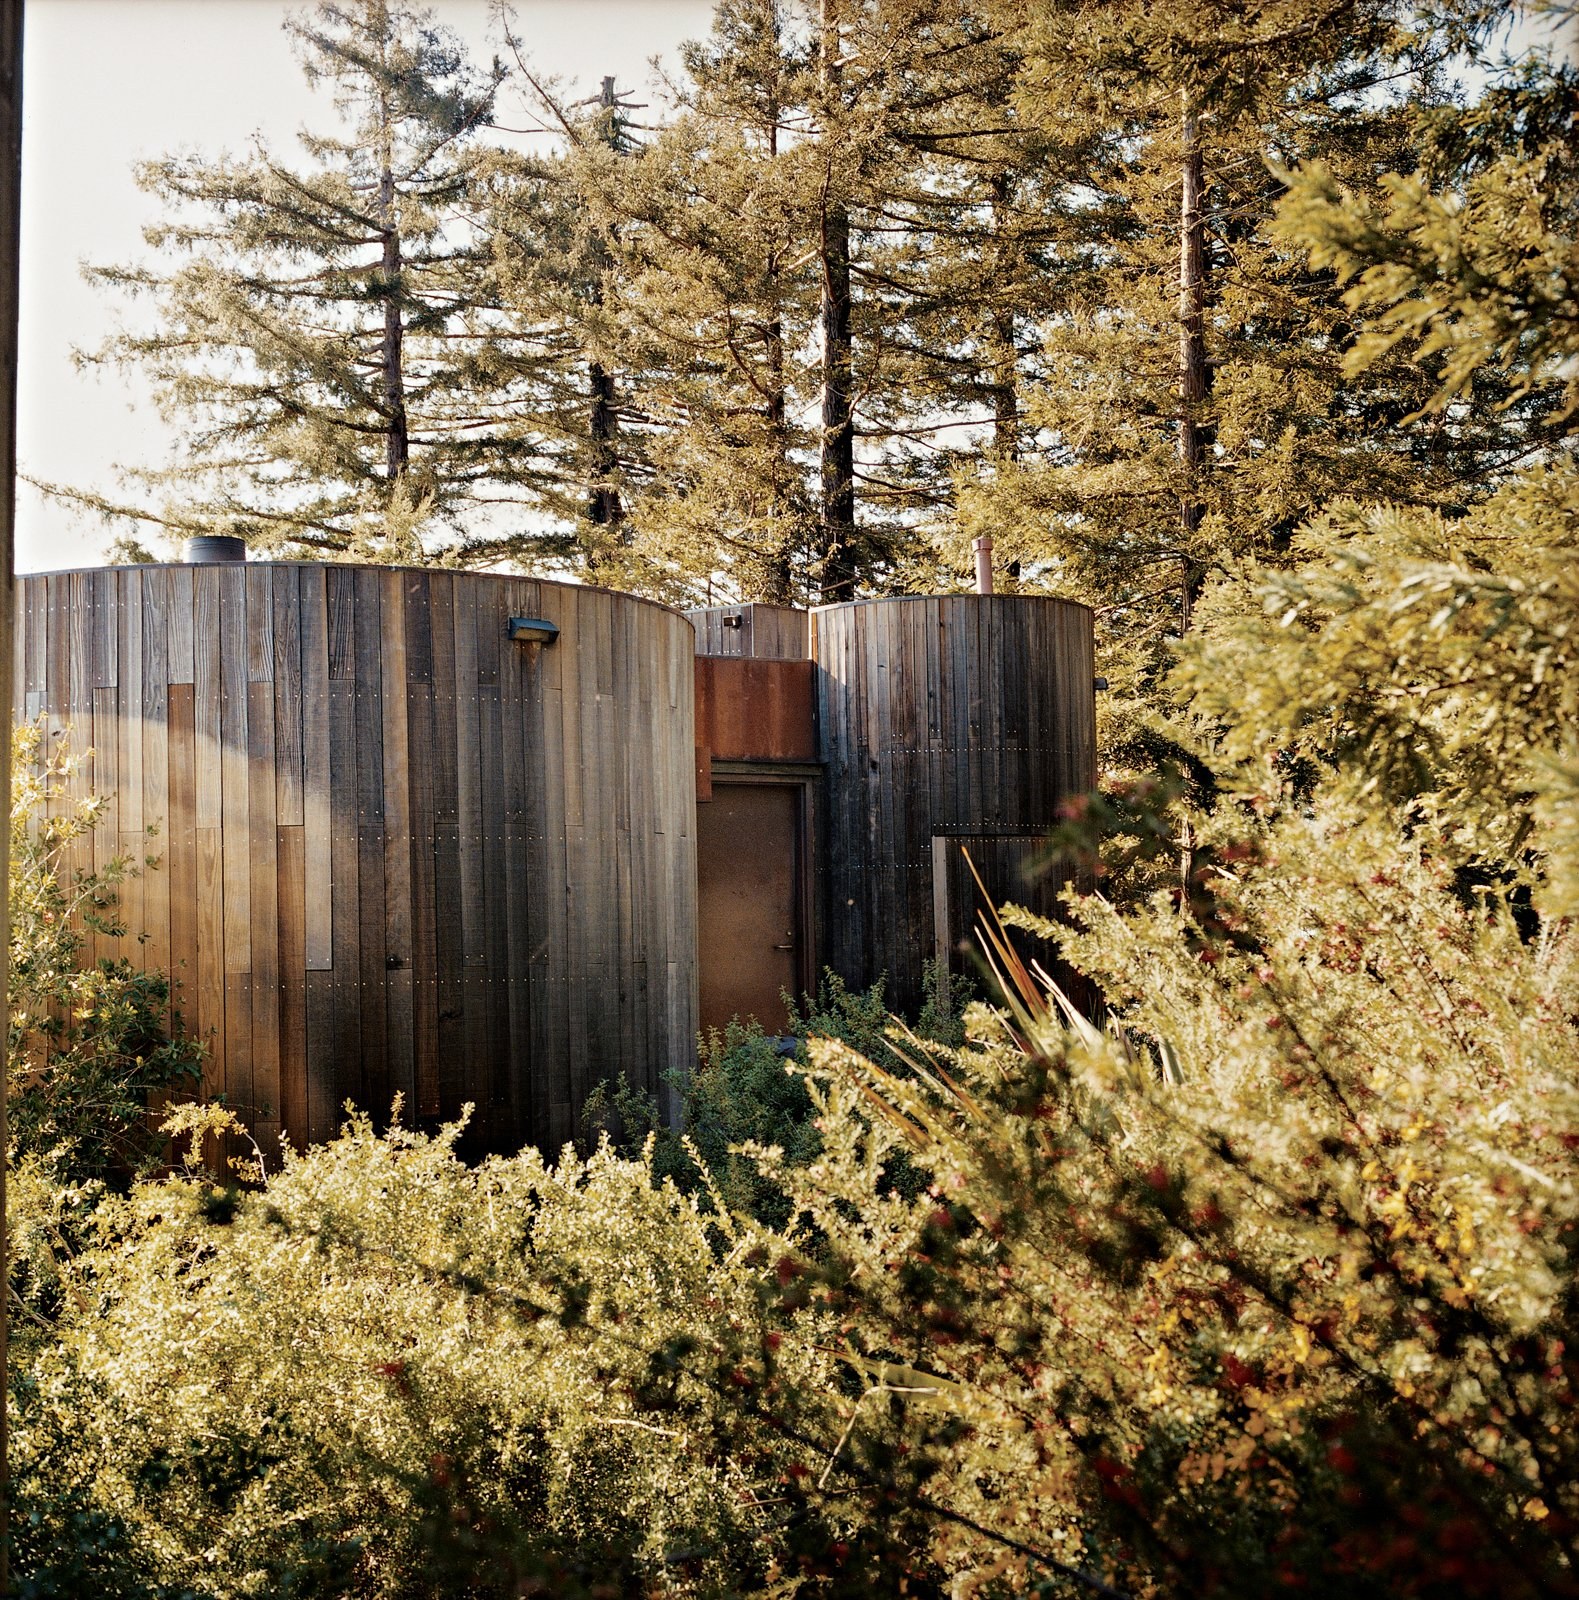 For the Butterfly cabin, which is part of the Post Ranch Inn, Muennig chose materials that age gracefully when exposed to the elements. He regularly uses Cor-Ten steel, a group of steel alloys that form a stable rust-like appearance when battered by wind and rain. Tagged: Exterior, Cabin Building Type, Wood Siding Material, Metal Siding Material, and Flat RoofLine.  Photo 72 of 101 in 101 Best Modern Cabins from Big Sur: Coastal Commissions